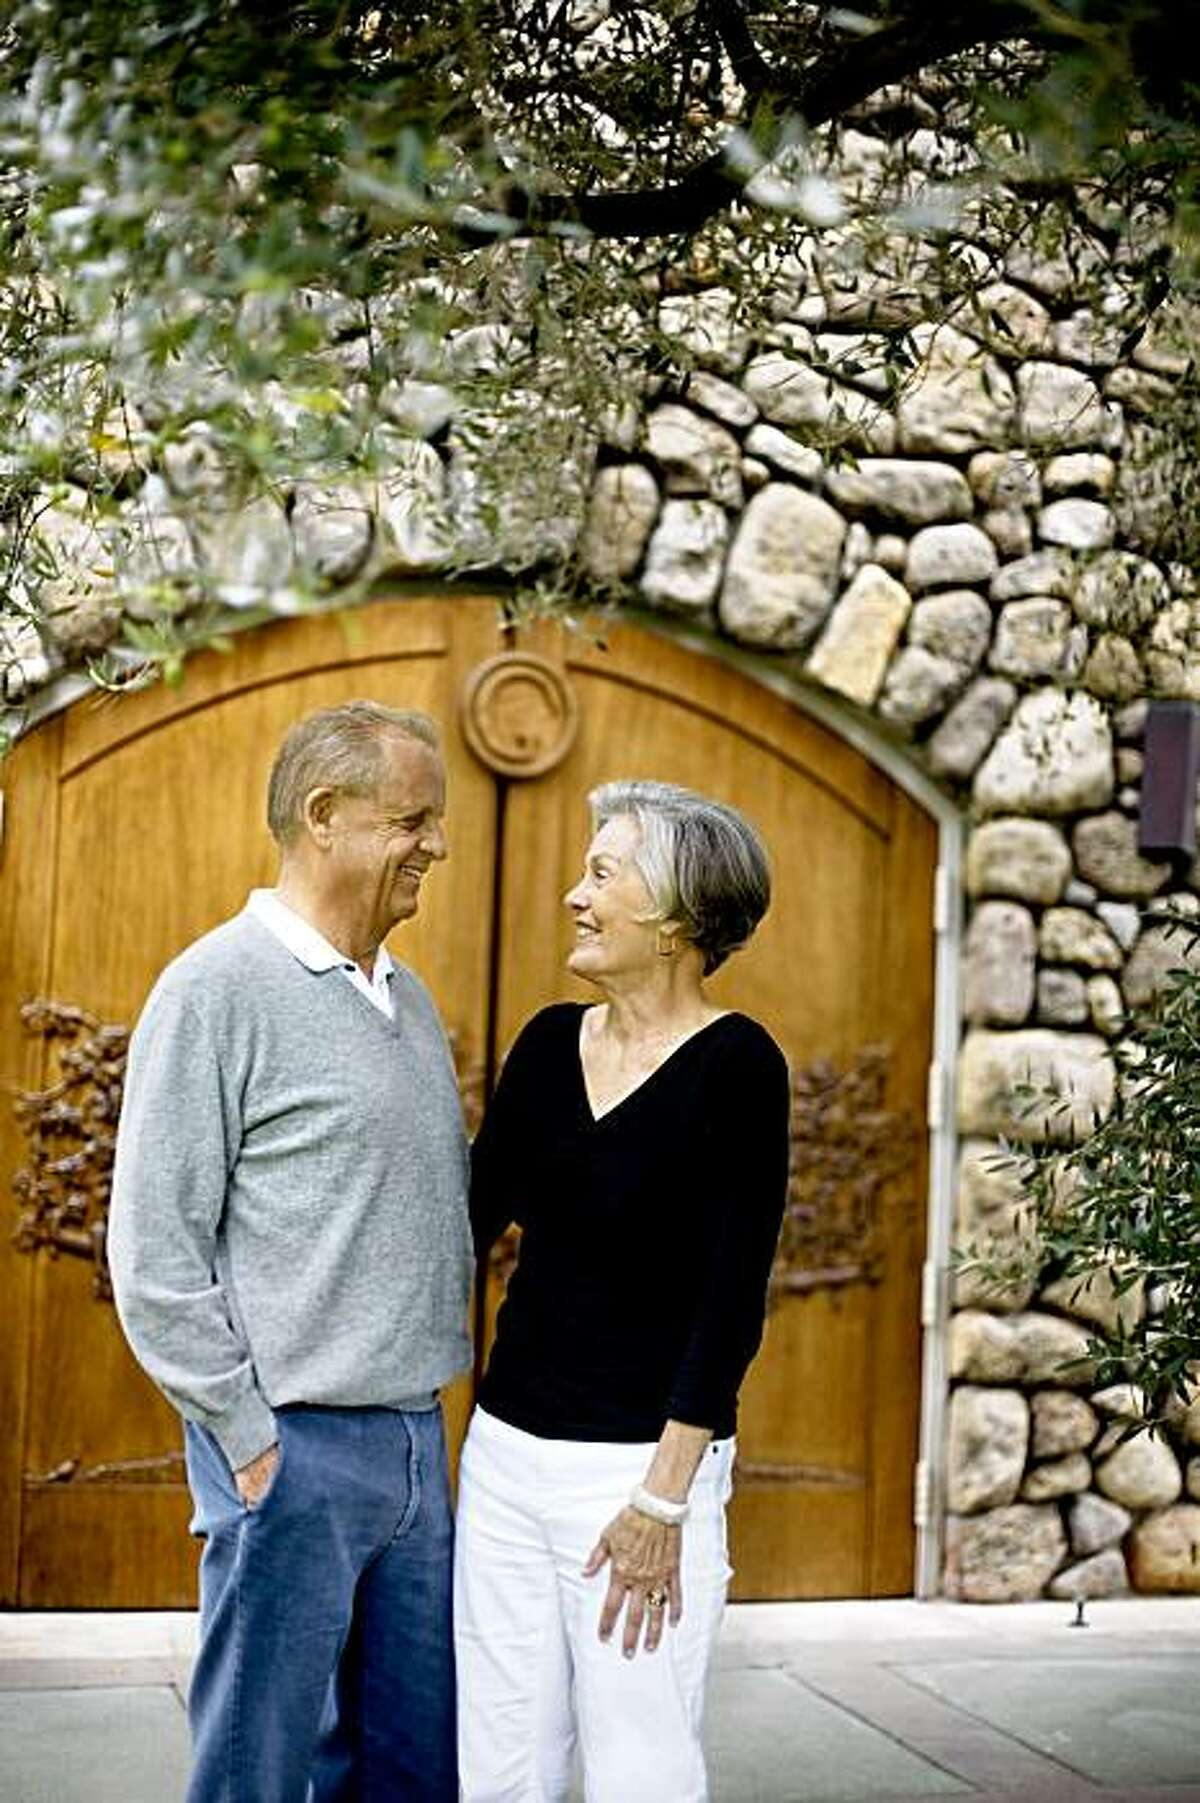 Vintner Dick Grace, who created the first cult Cabernet, and his wife, Ann, of Grace Family Vineyards, in St. Helena, together outside their wine cellar, on Monday, August 31, 2009. They dedicate their life to nonprofit causes throughout Asia.